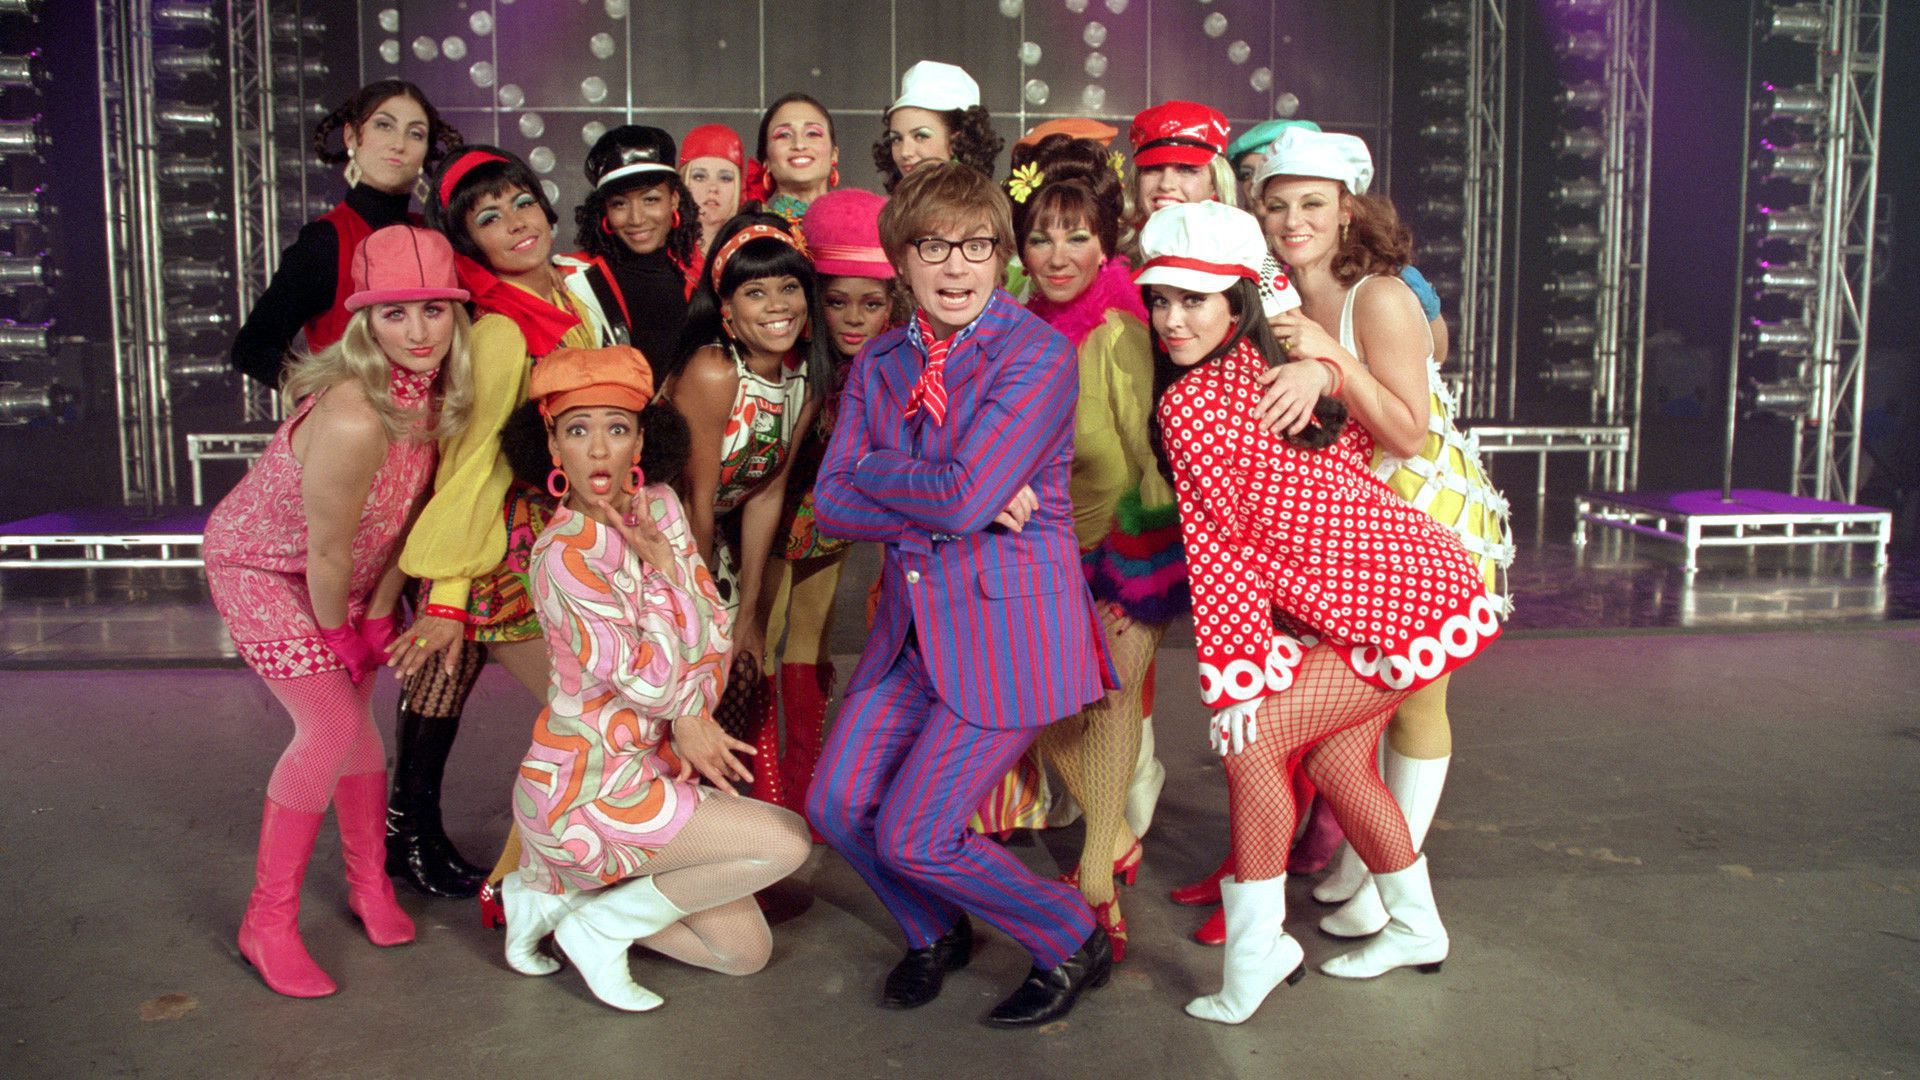 Austin Powers Gallery